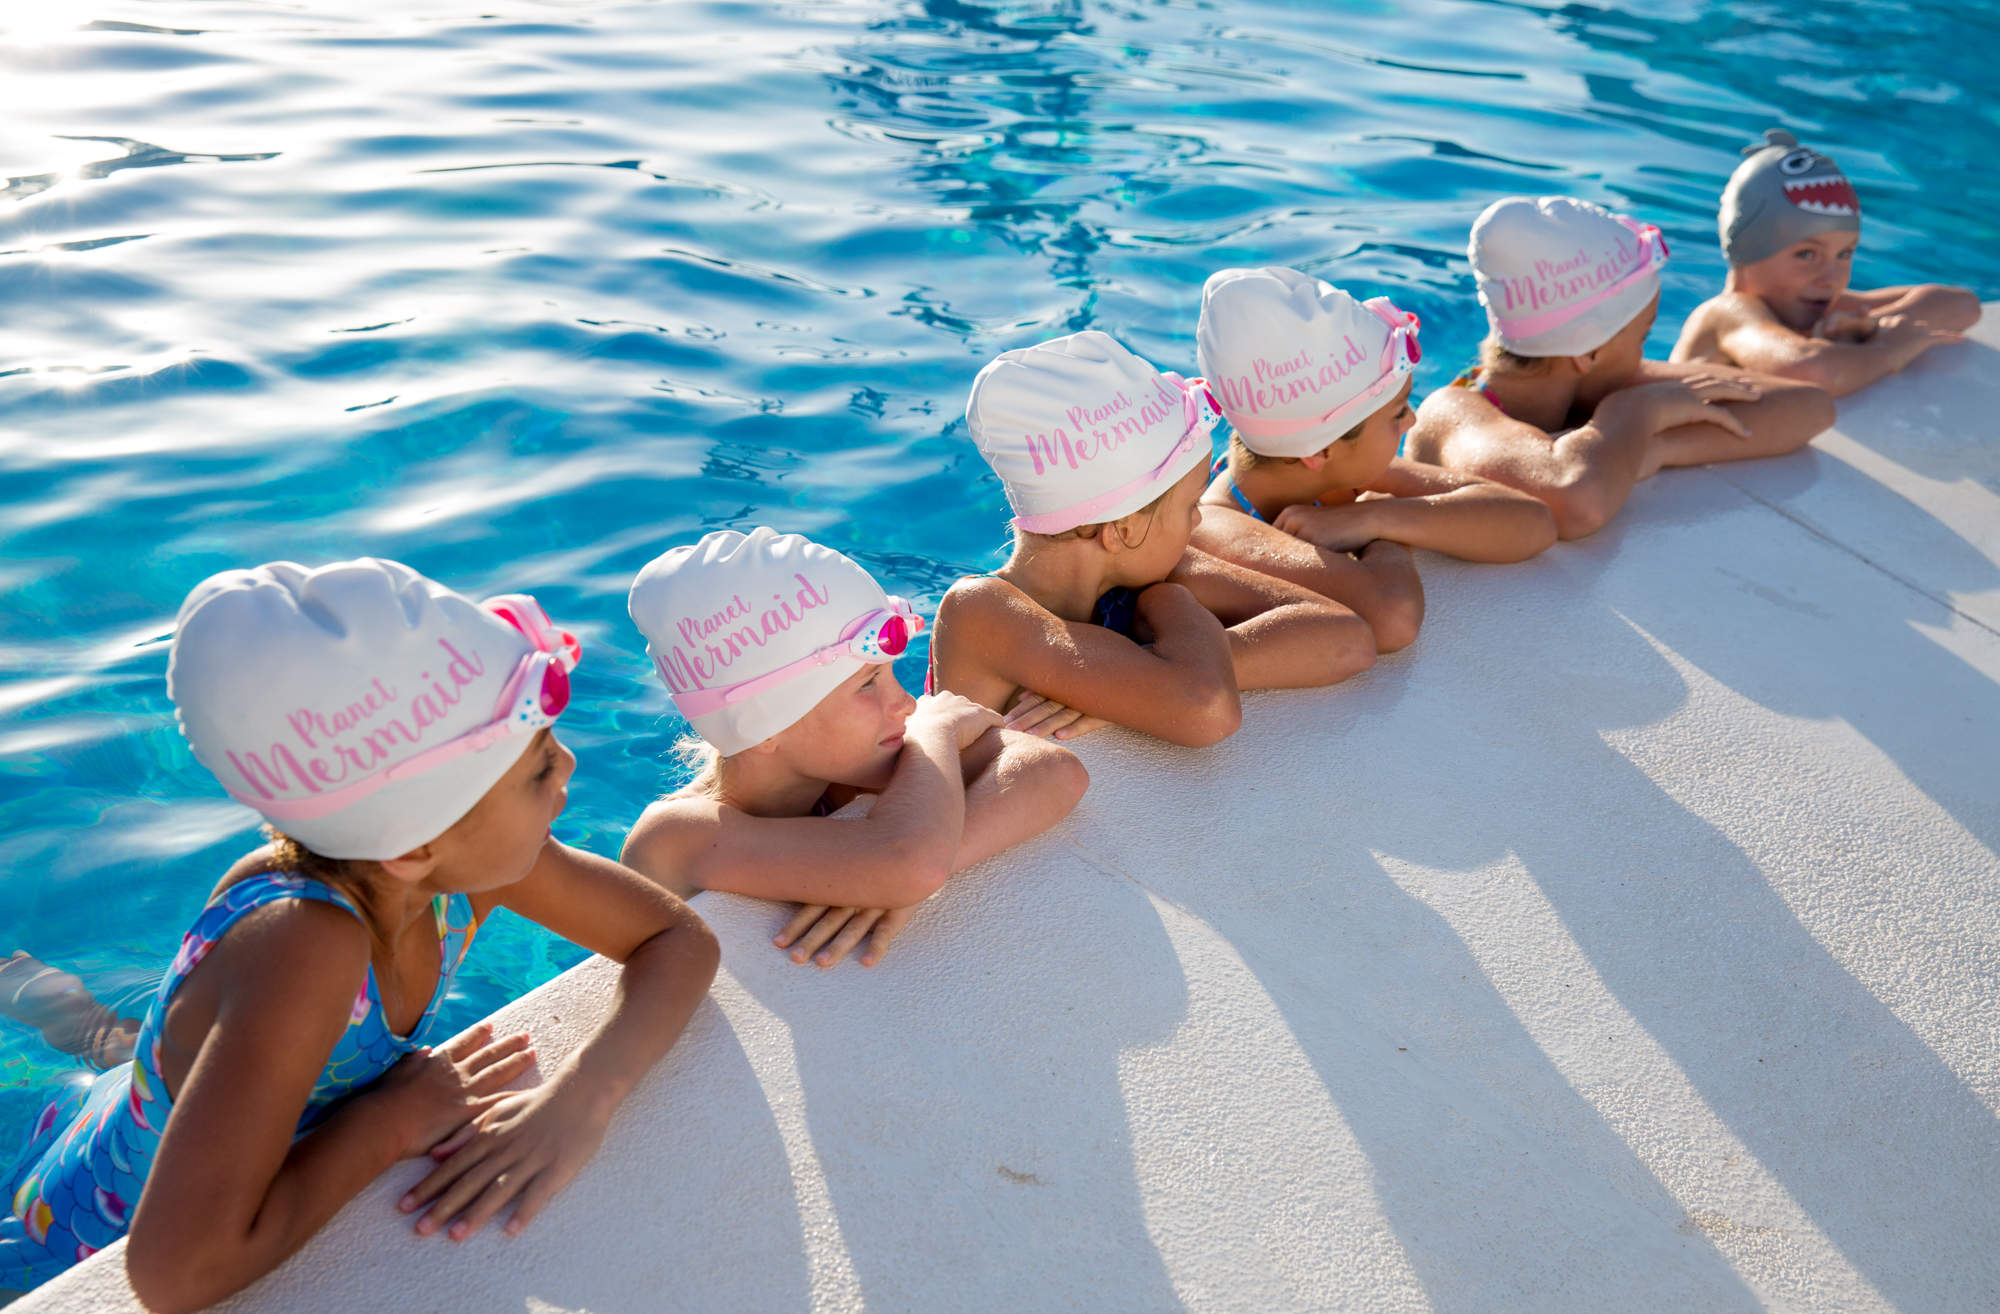 Mermaid swim school classes, birthday parties and instructor training